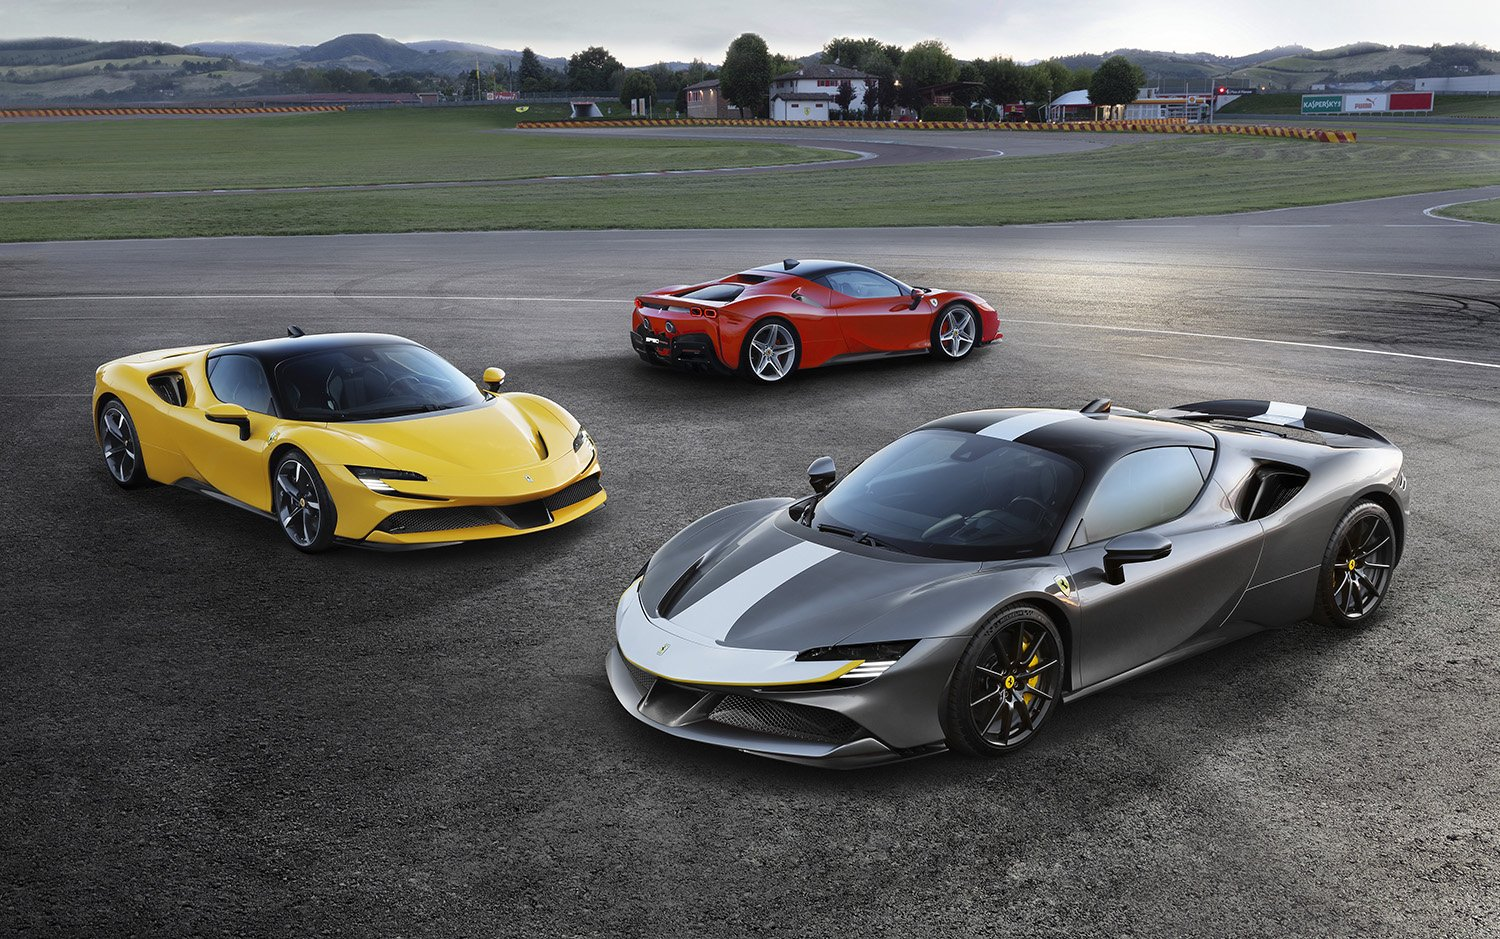 Universo Ferrari – the first event dedicated exclusively to Ferrari in its hometown